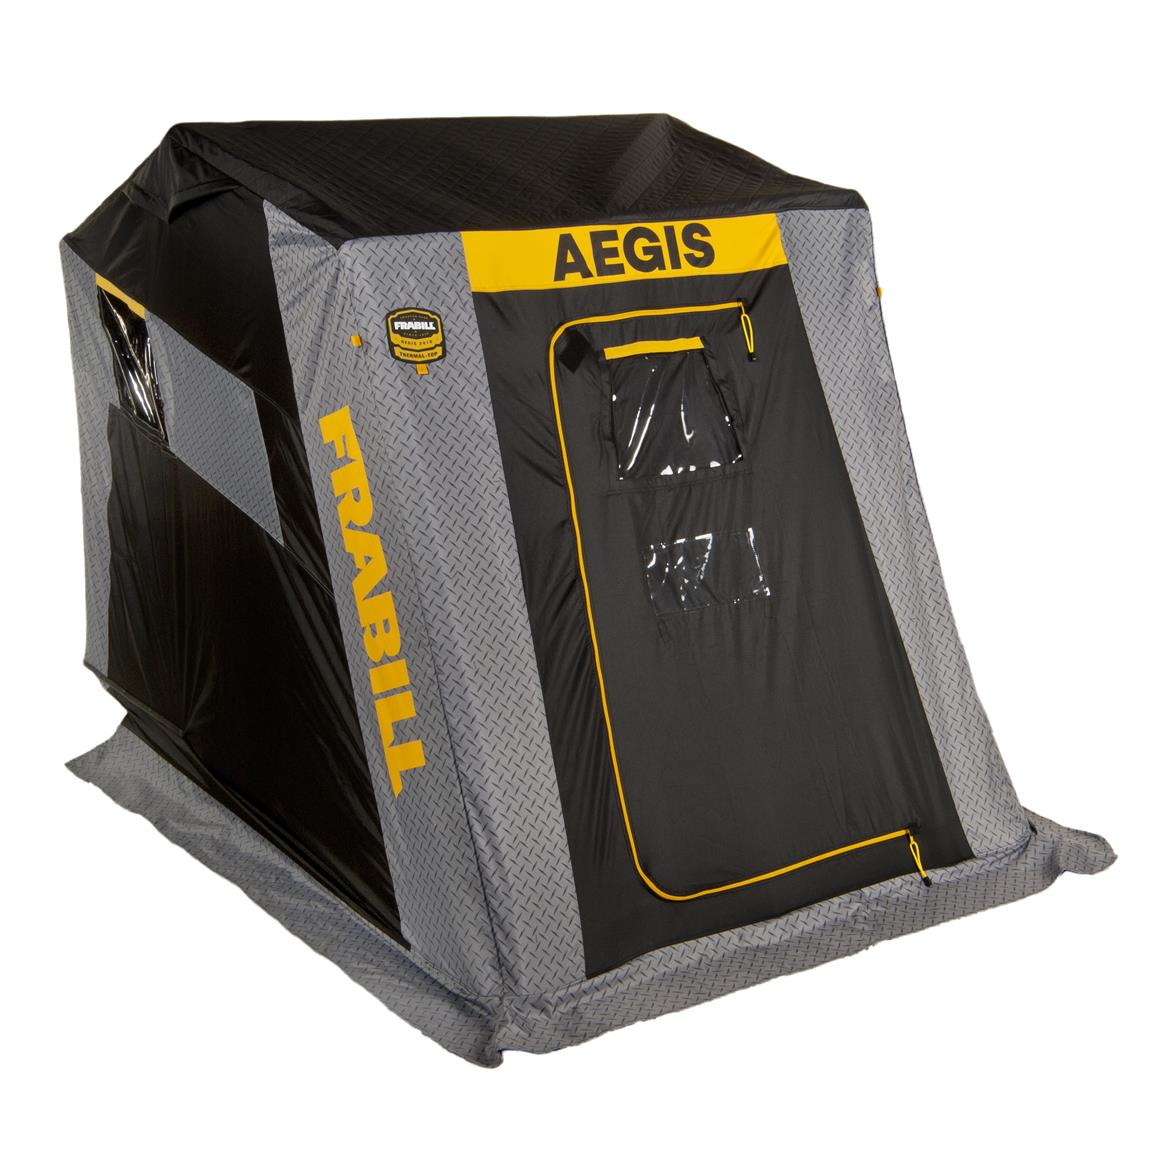 Frabill Aegis 2000 Ice Shelter, 2 Person